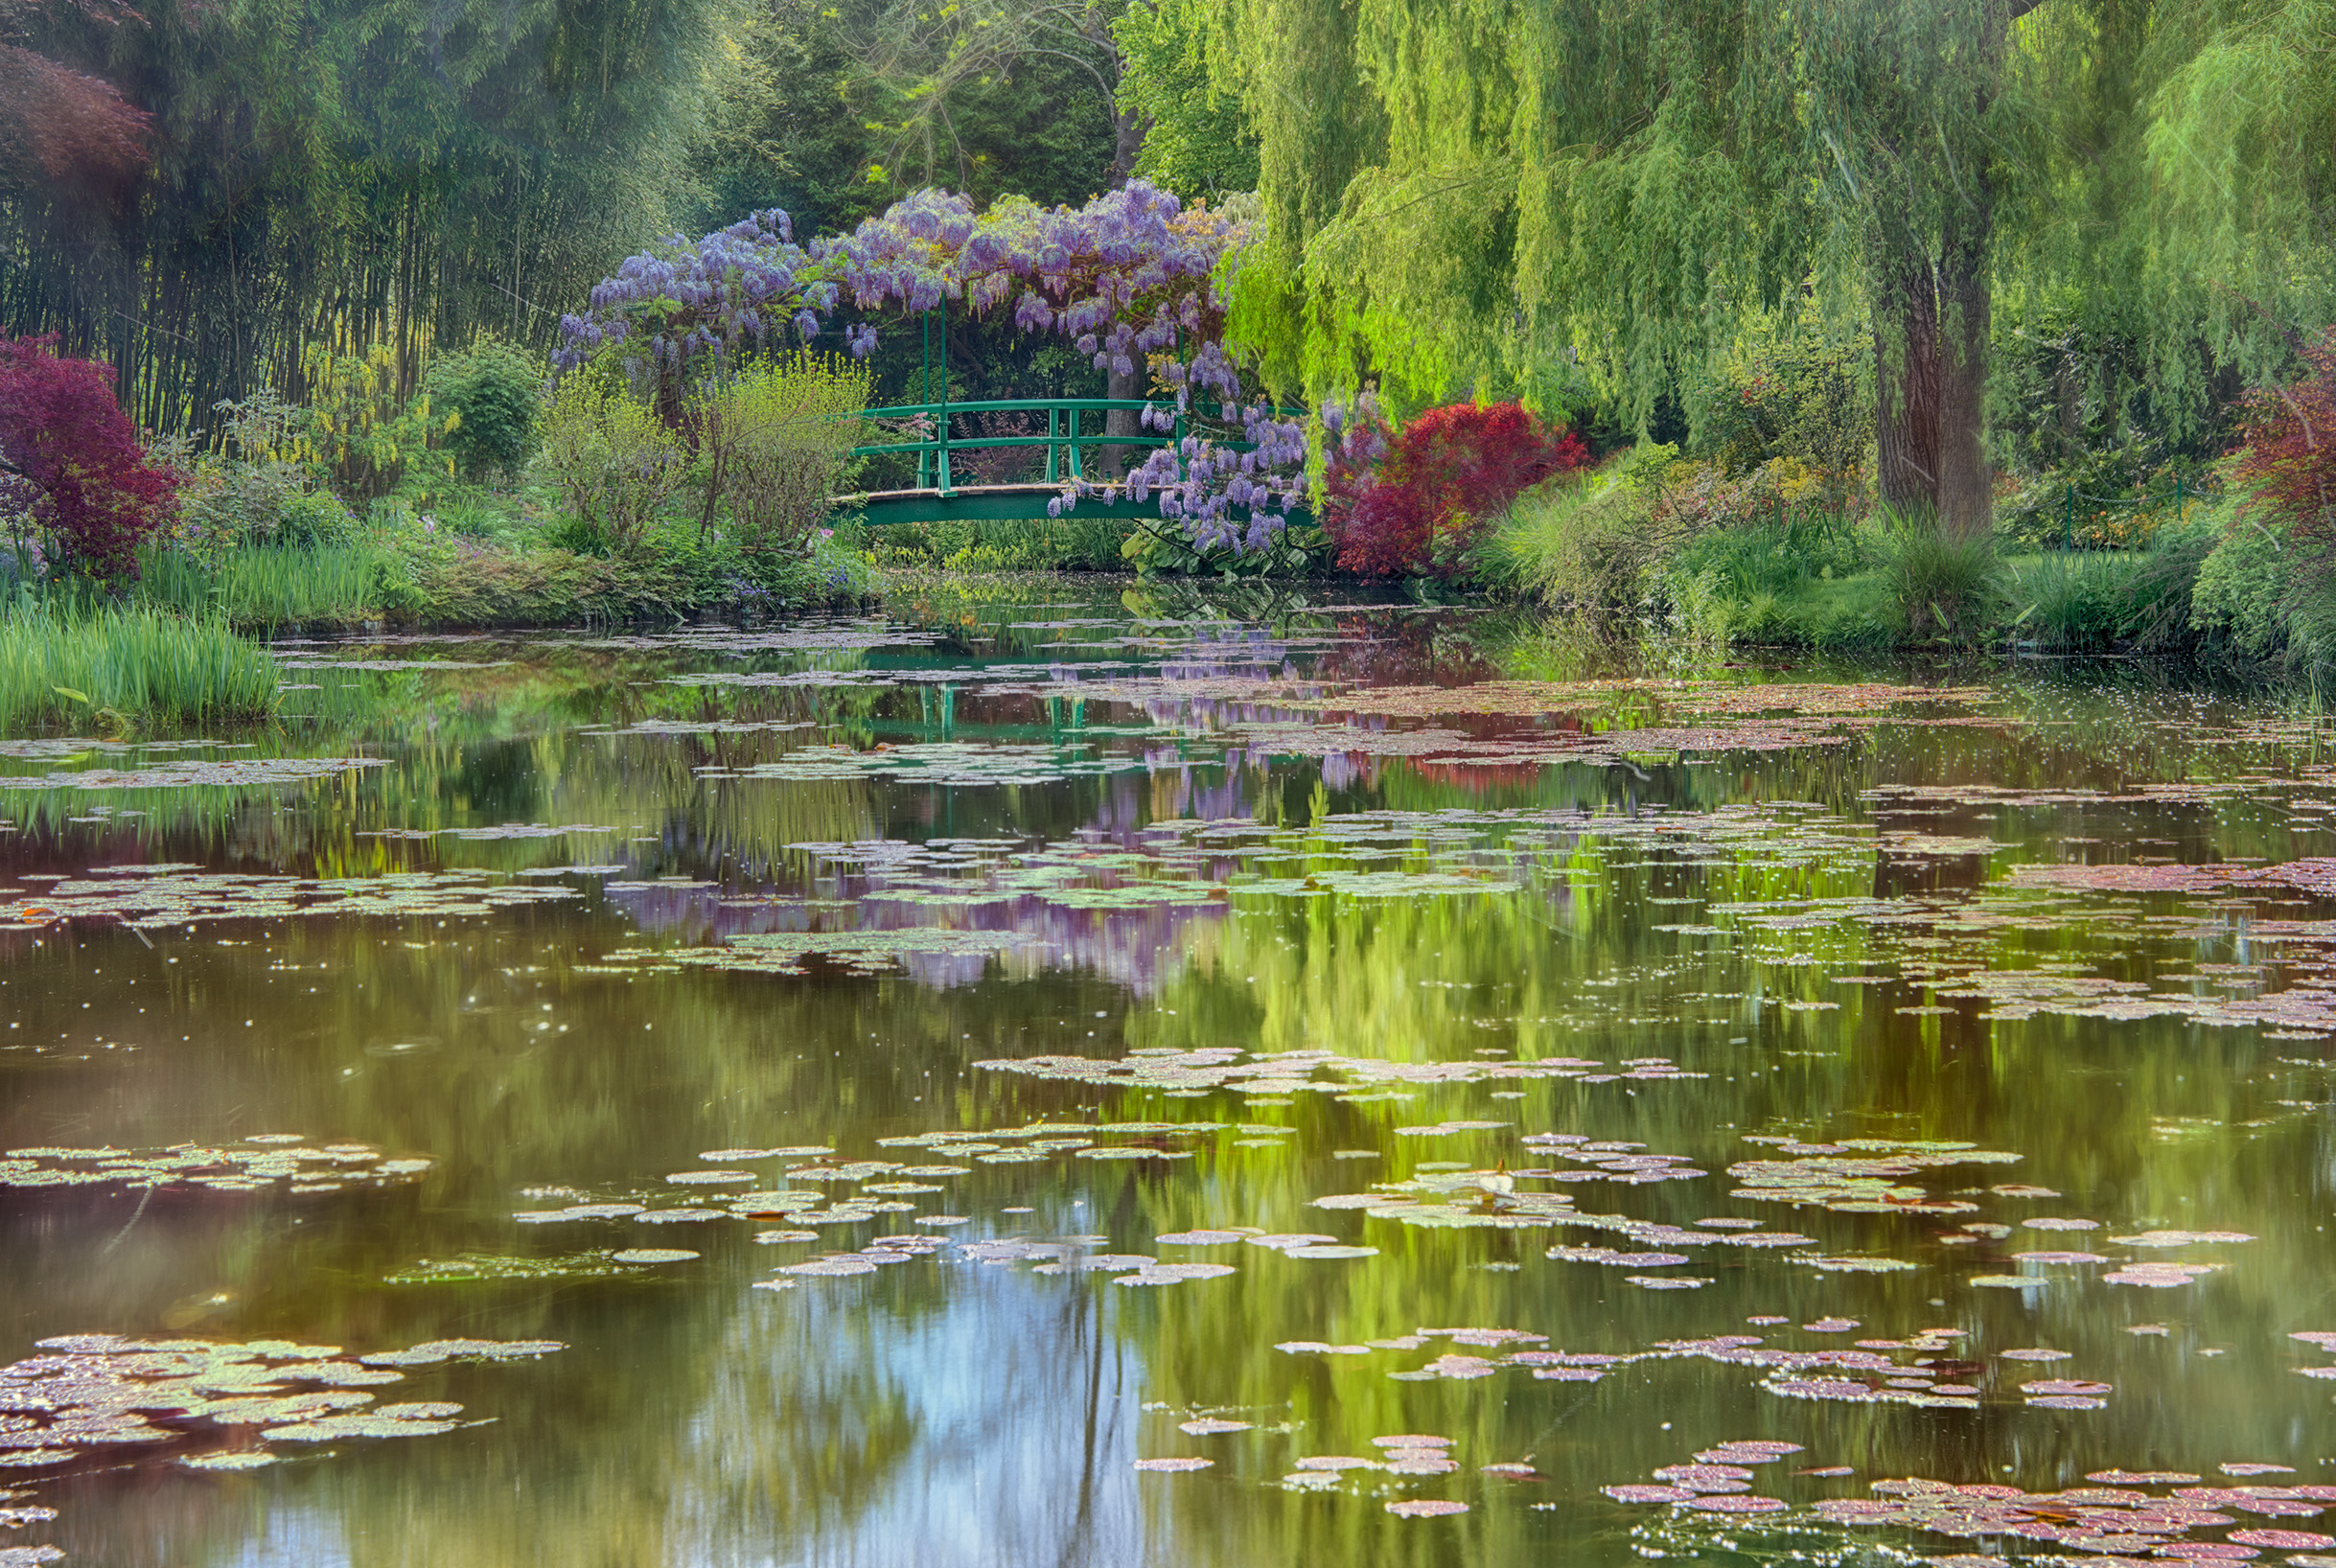 Monet's Lily Pond at Giverny